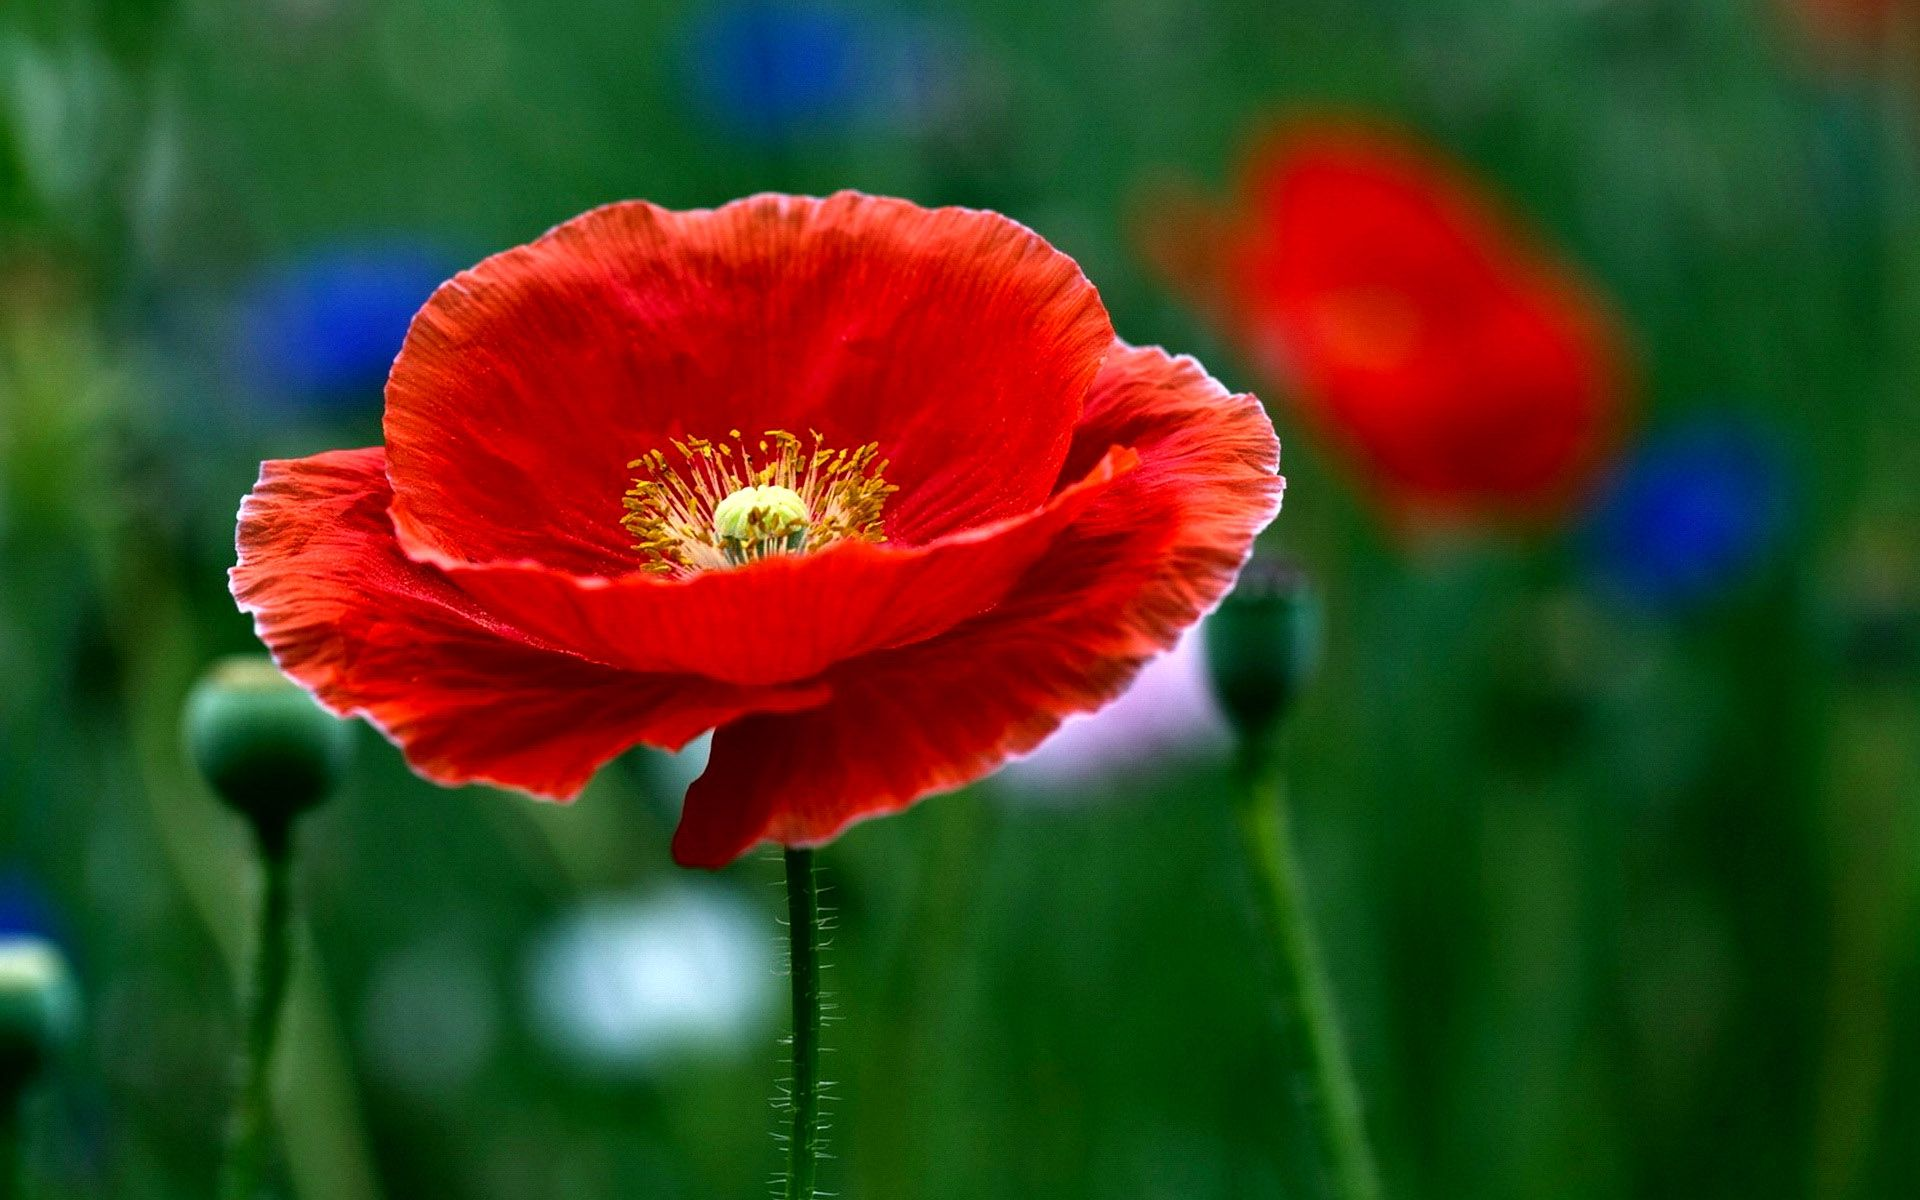 Pictures Of Poppies The Flower Garden Inspiration